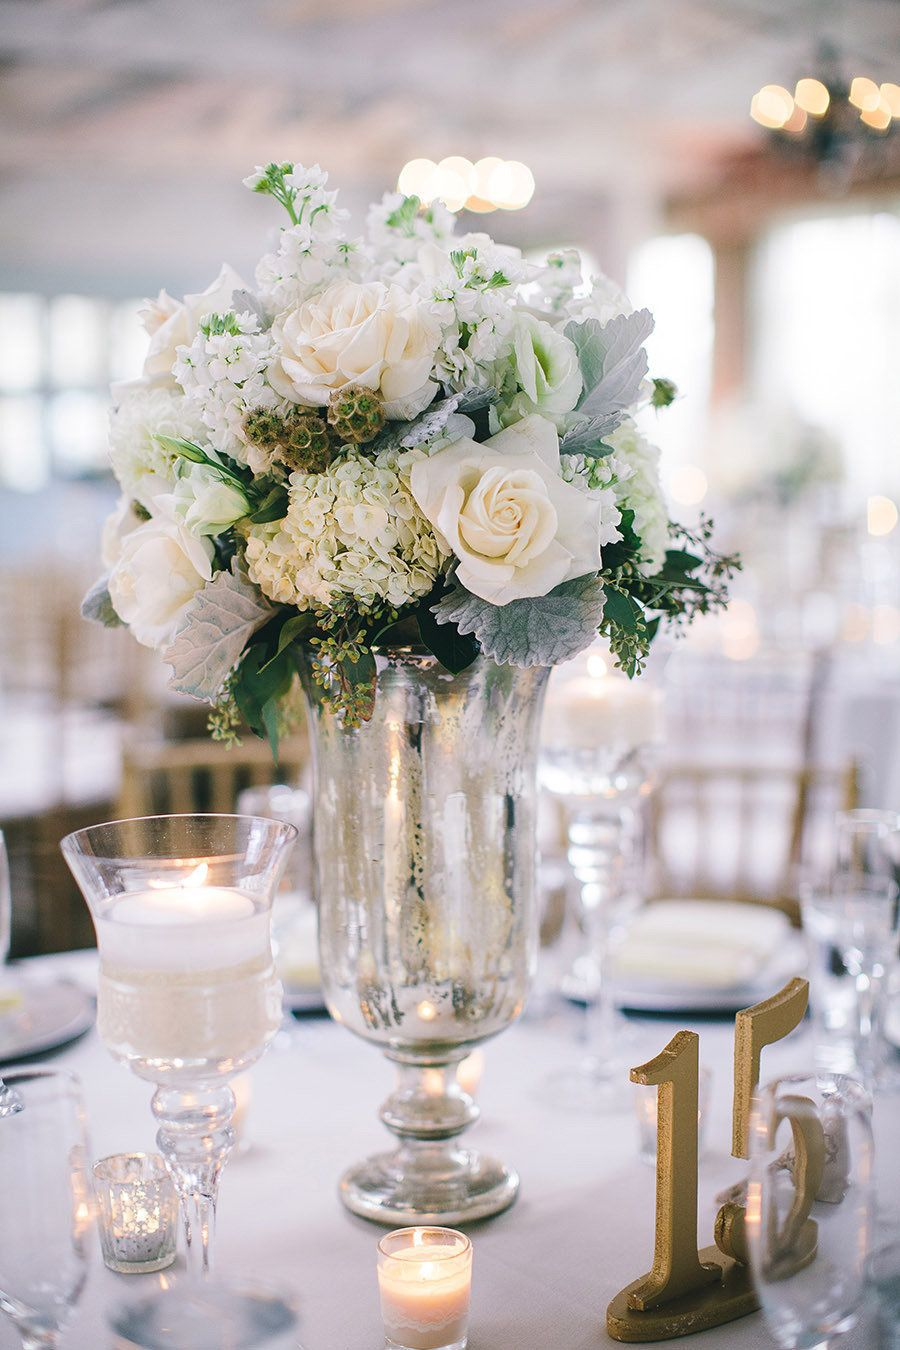 Vintage Inspired Wedding in Pasadena from Full Spectrum Photography ...